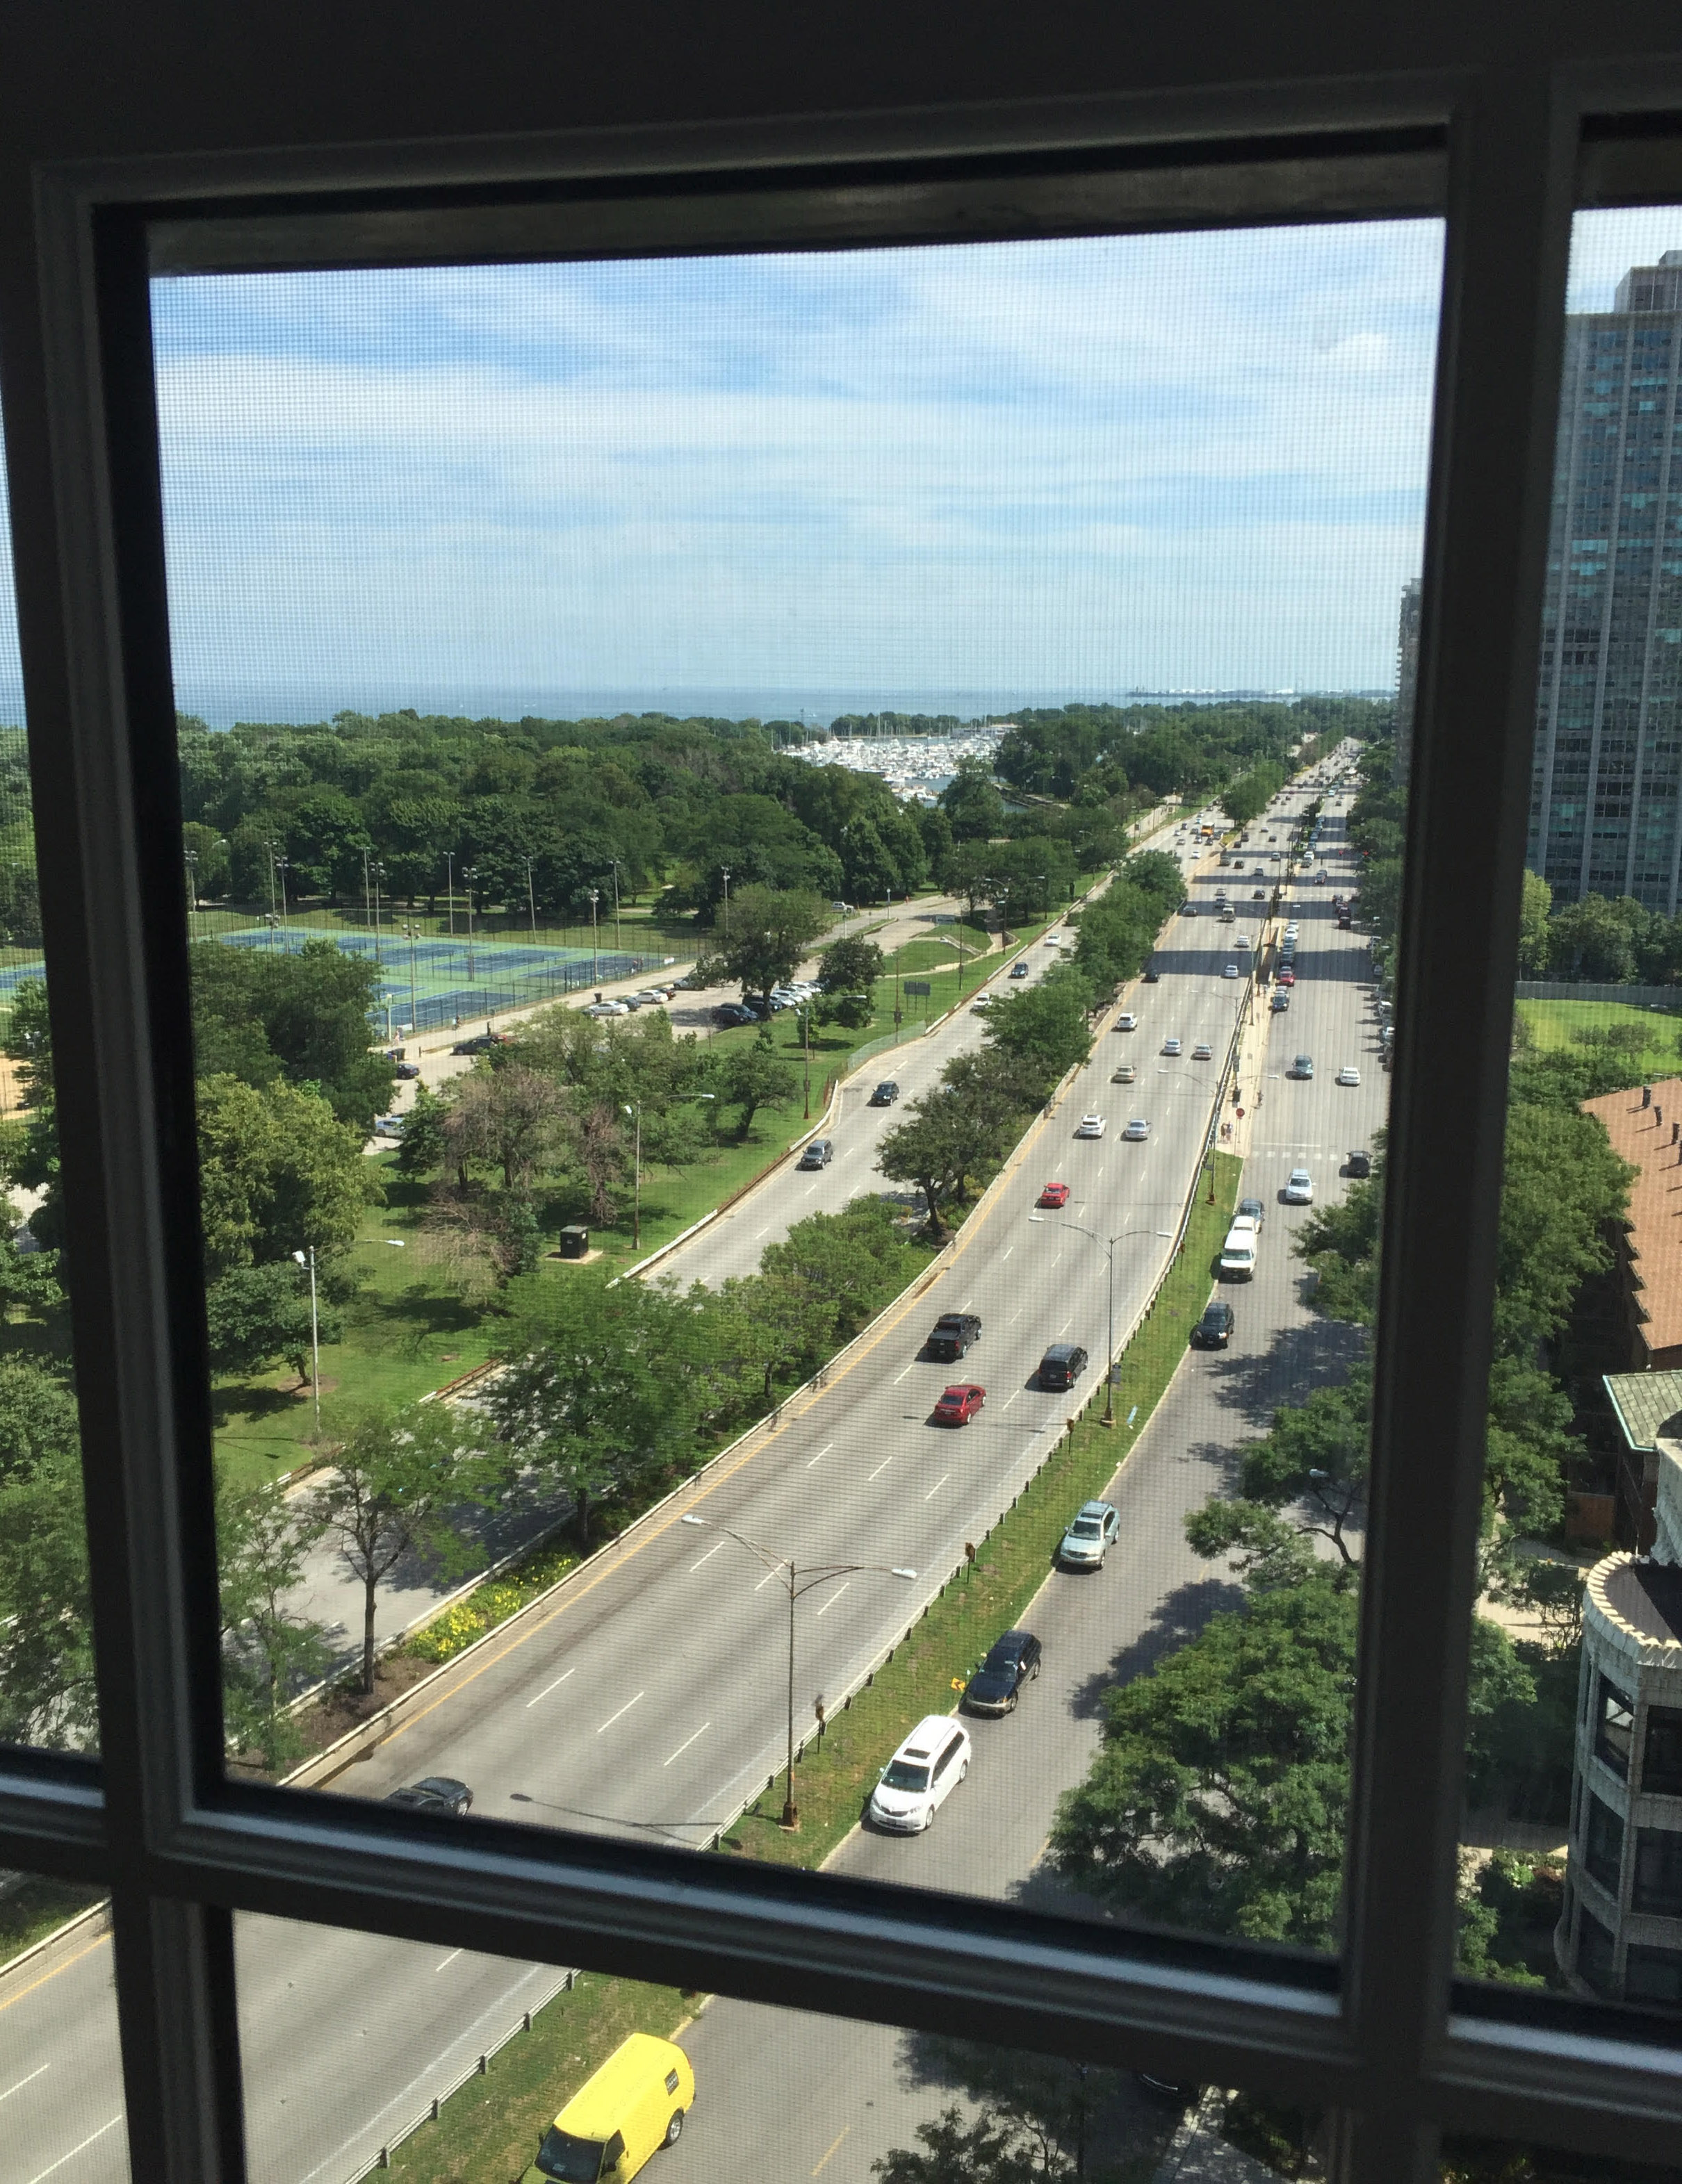 THE VIEW OUT THE WINDOW LOOKING SOUTH ON LAKE SHORE DRIVE.